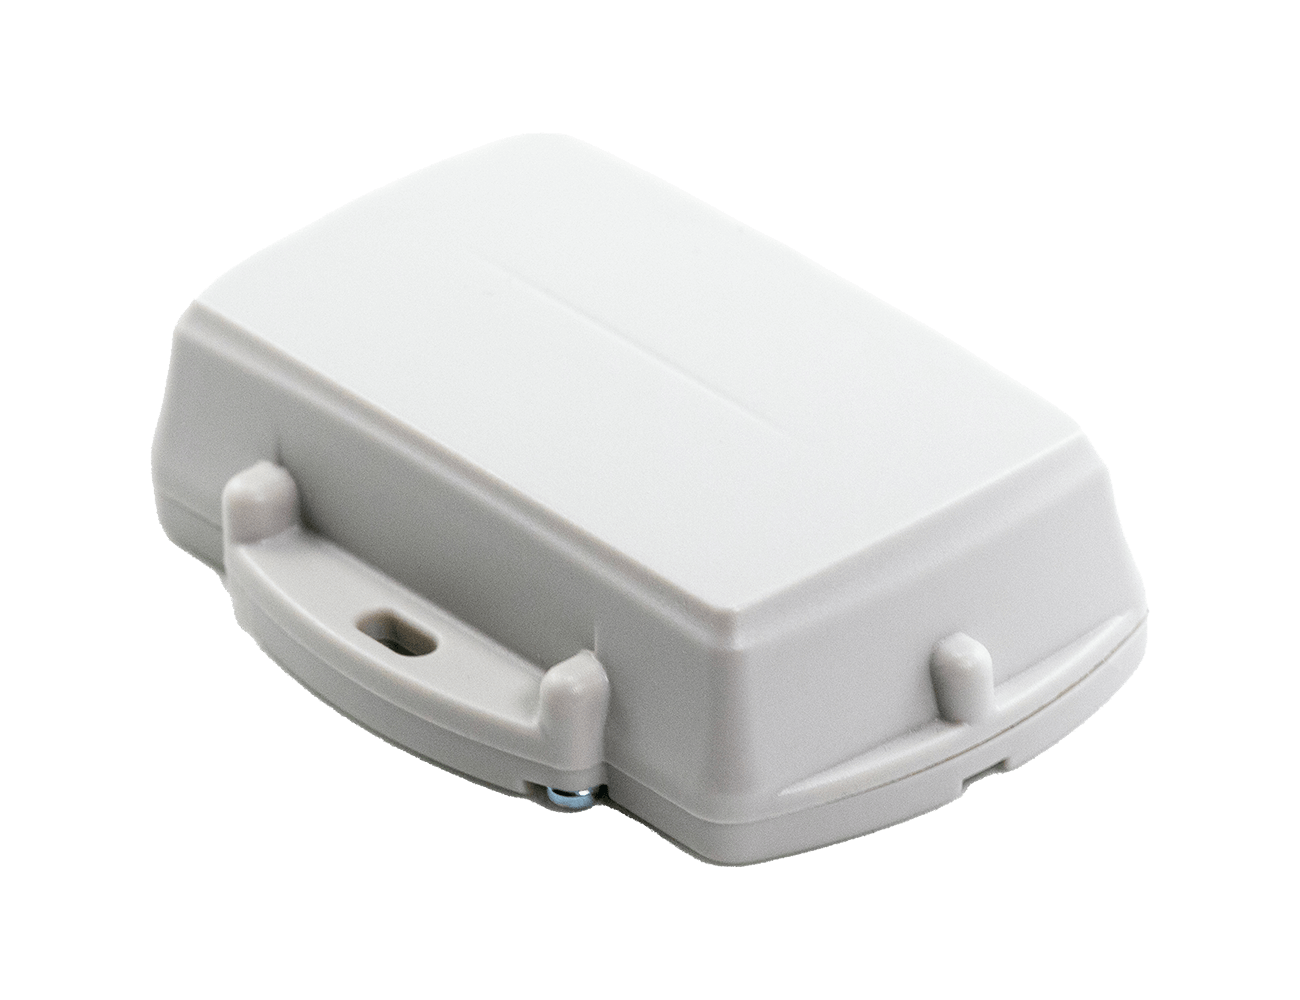 AT2 Asset Tracker device